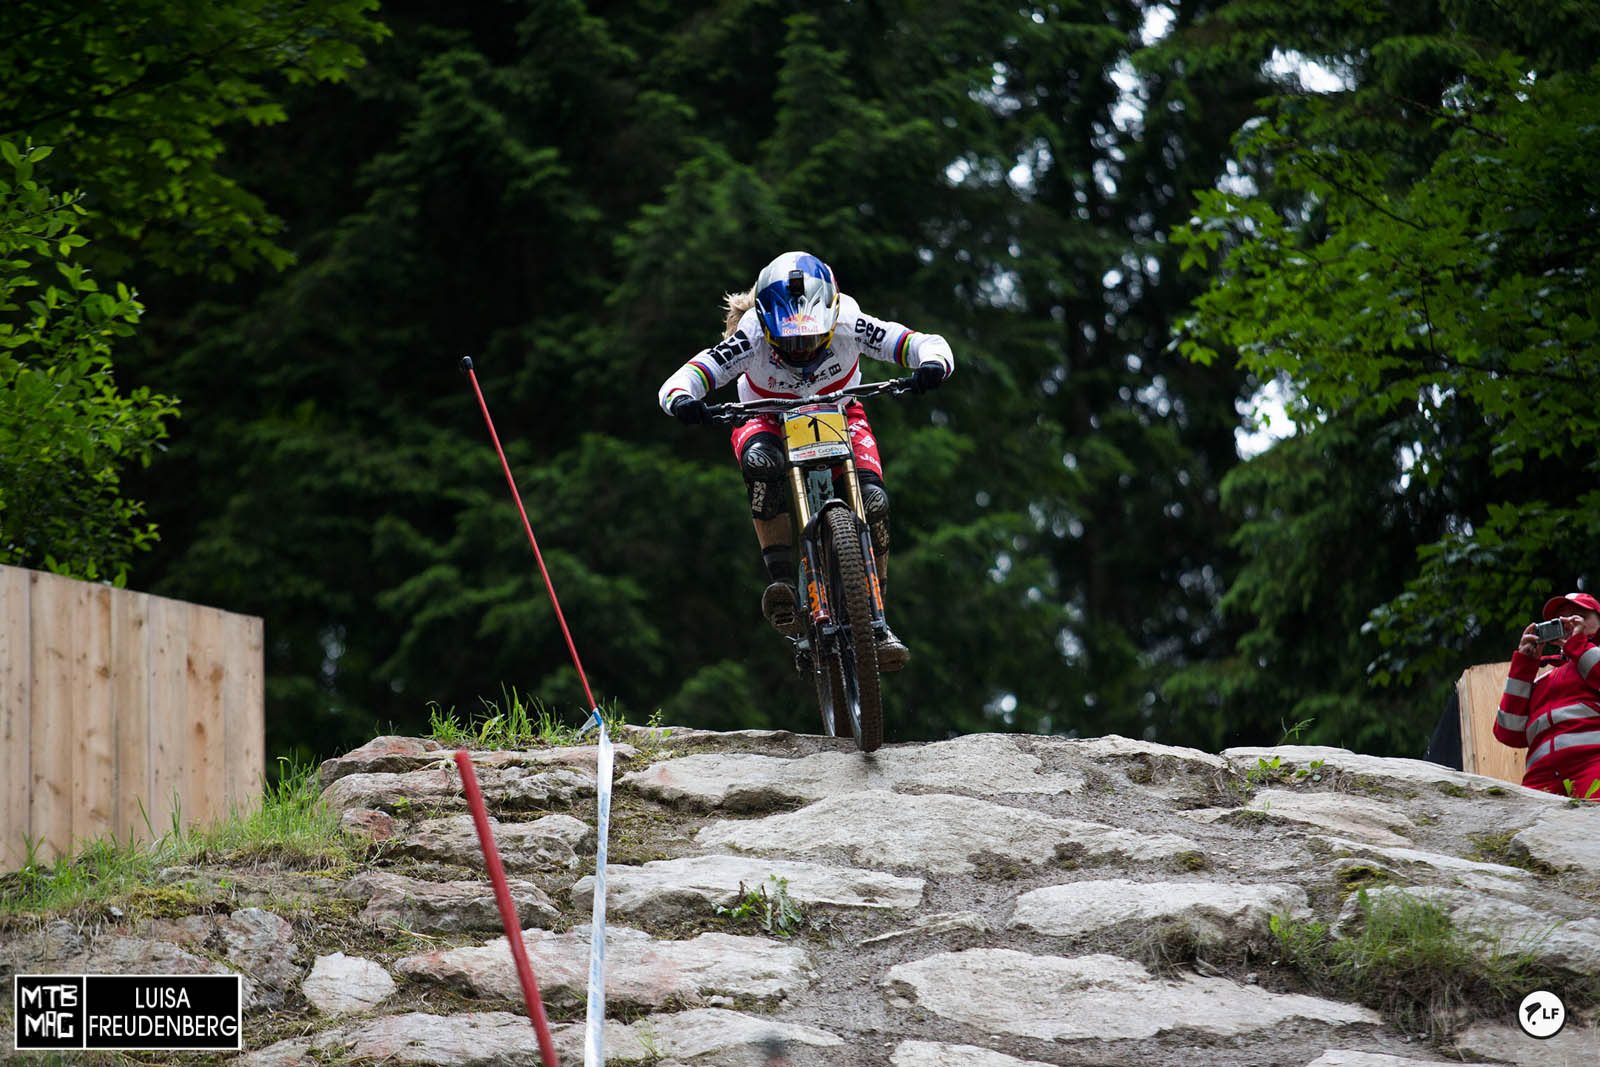 Rachel Atherton 10 in a row. Legend!